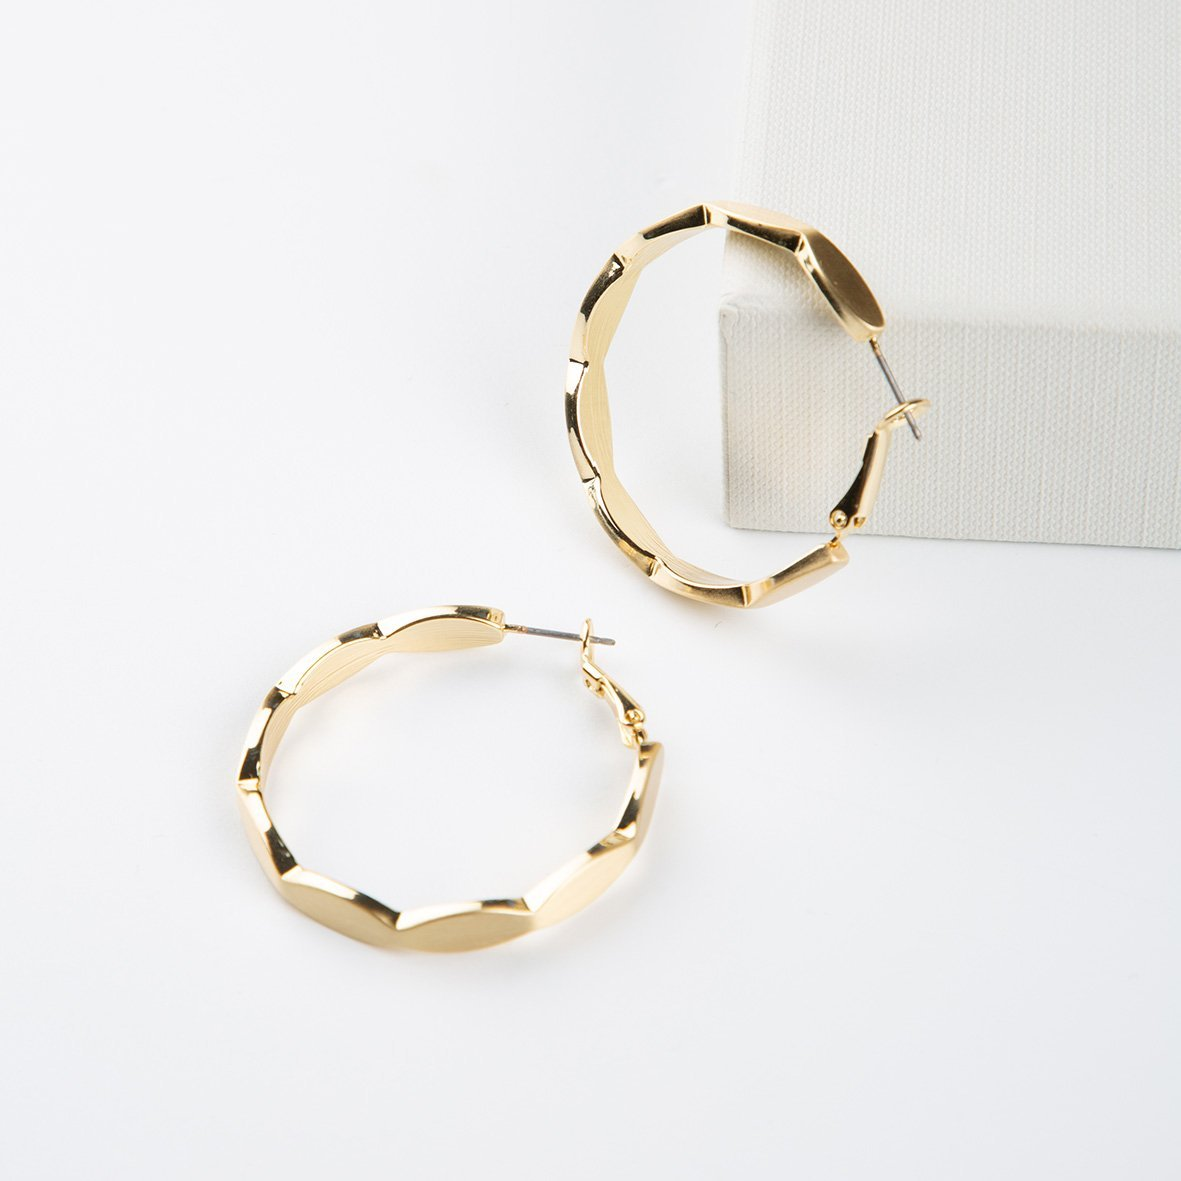 curAtiv proudly gives you Luxembourg Brushed Gold Hoops earrings.